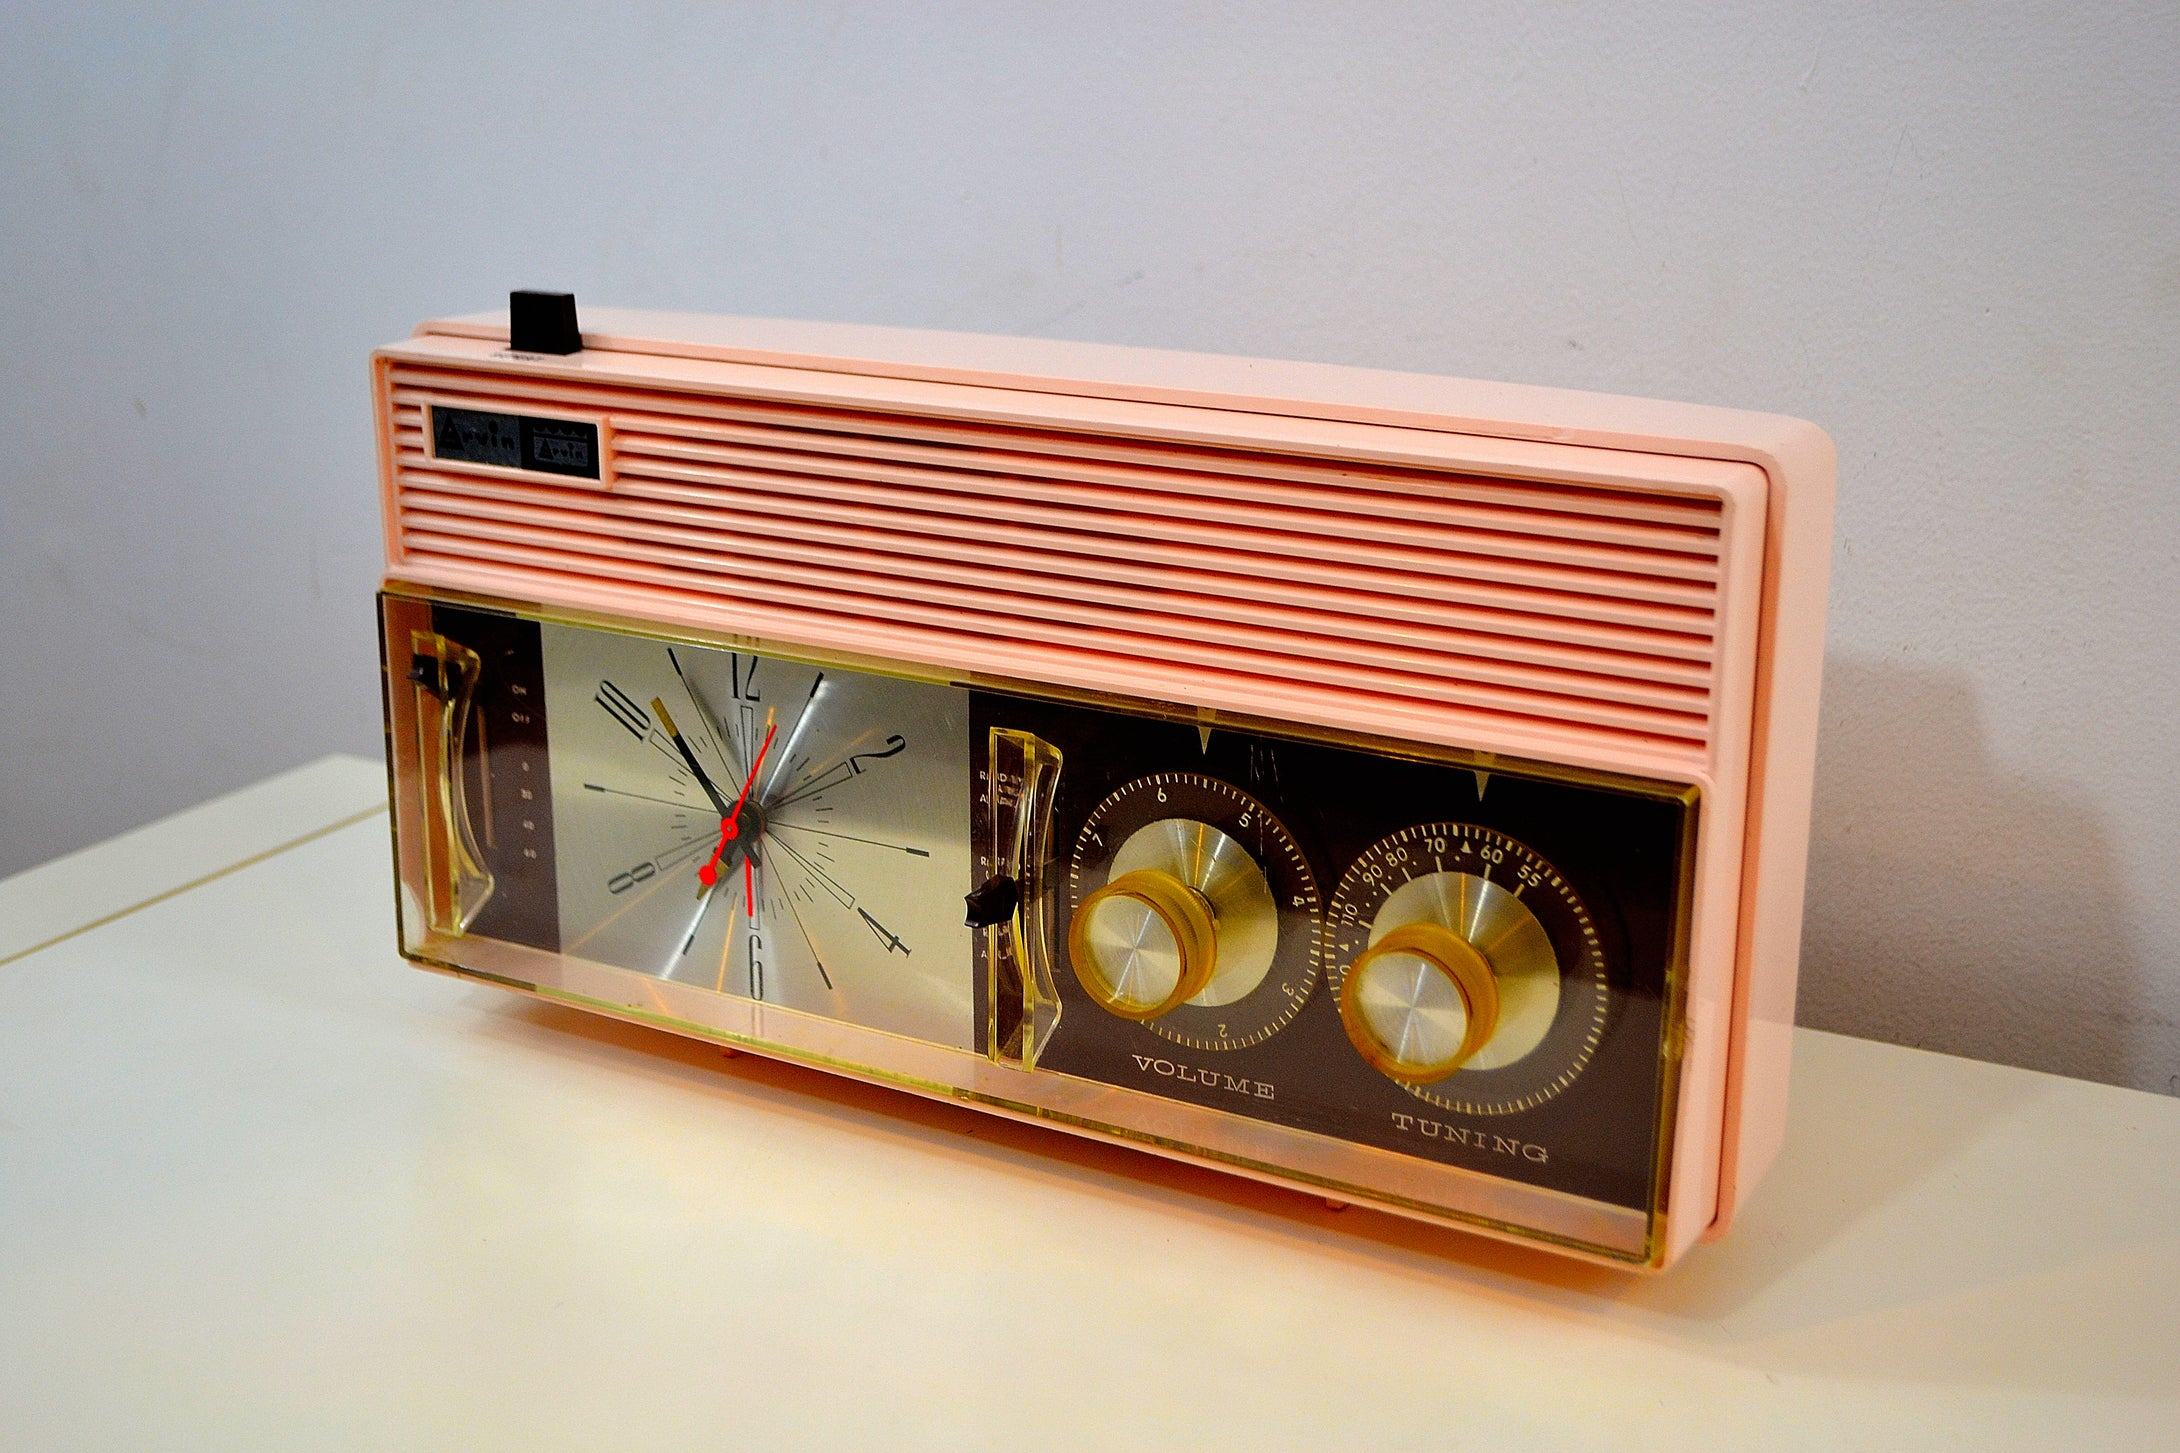 SOLD! - Dec 18, 2019 - Rosata Pink and Brown Mid Century Retro Vintage 1964 Arvin Model 52R43 AM Tube Clock Radio Rare! - [product_type} - Arvin - Retro Radio Farm